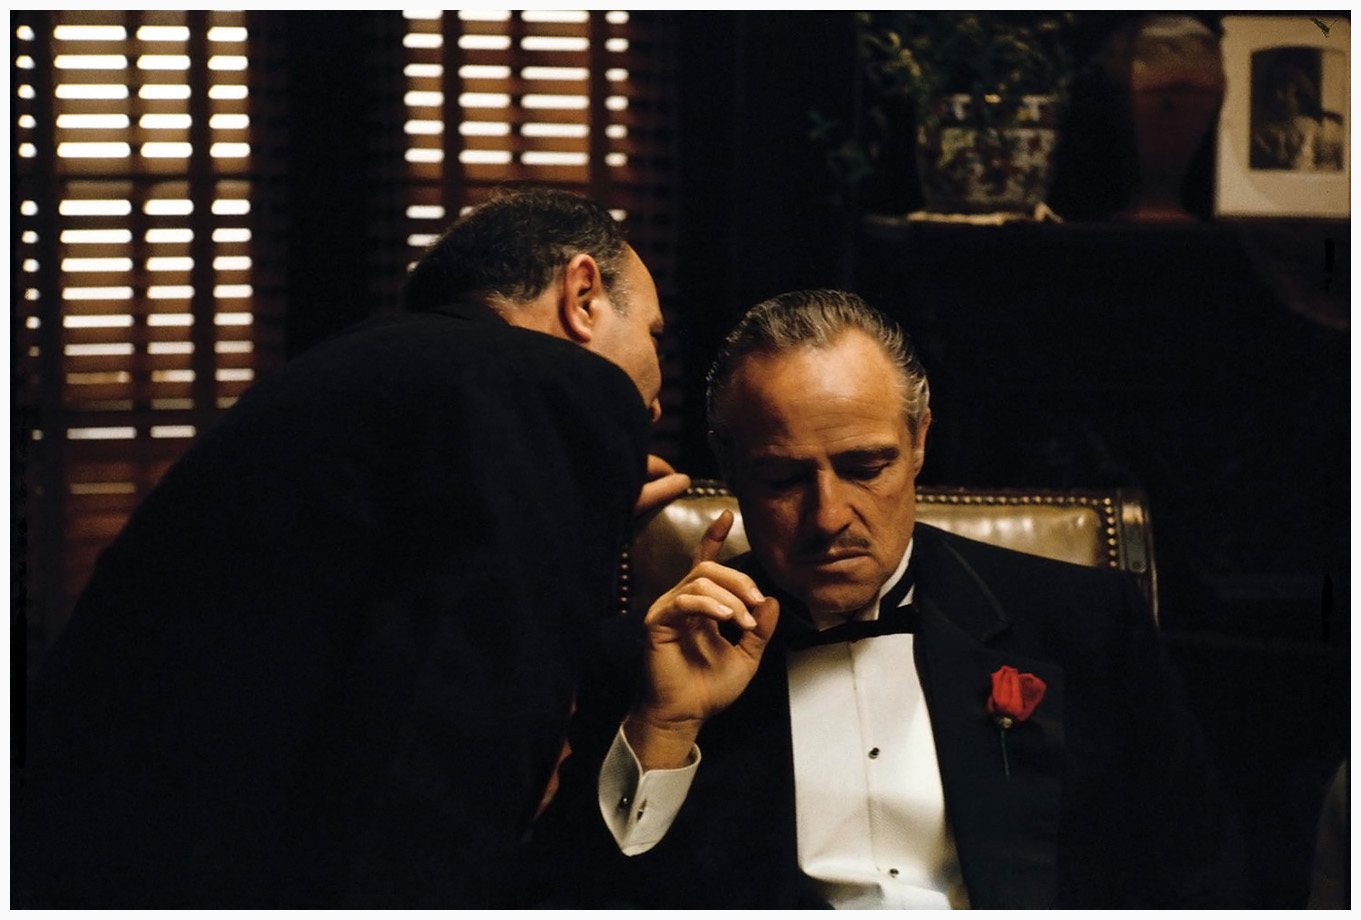 Brando - godfather